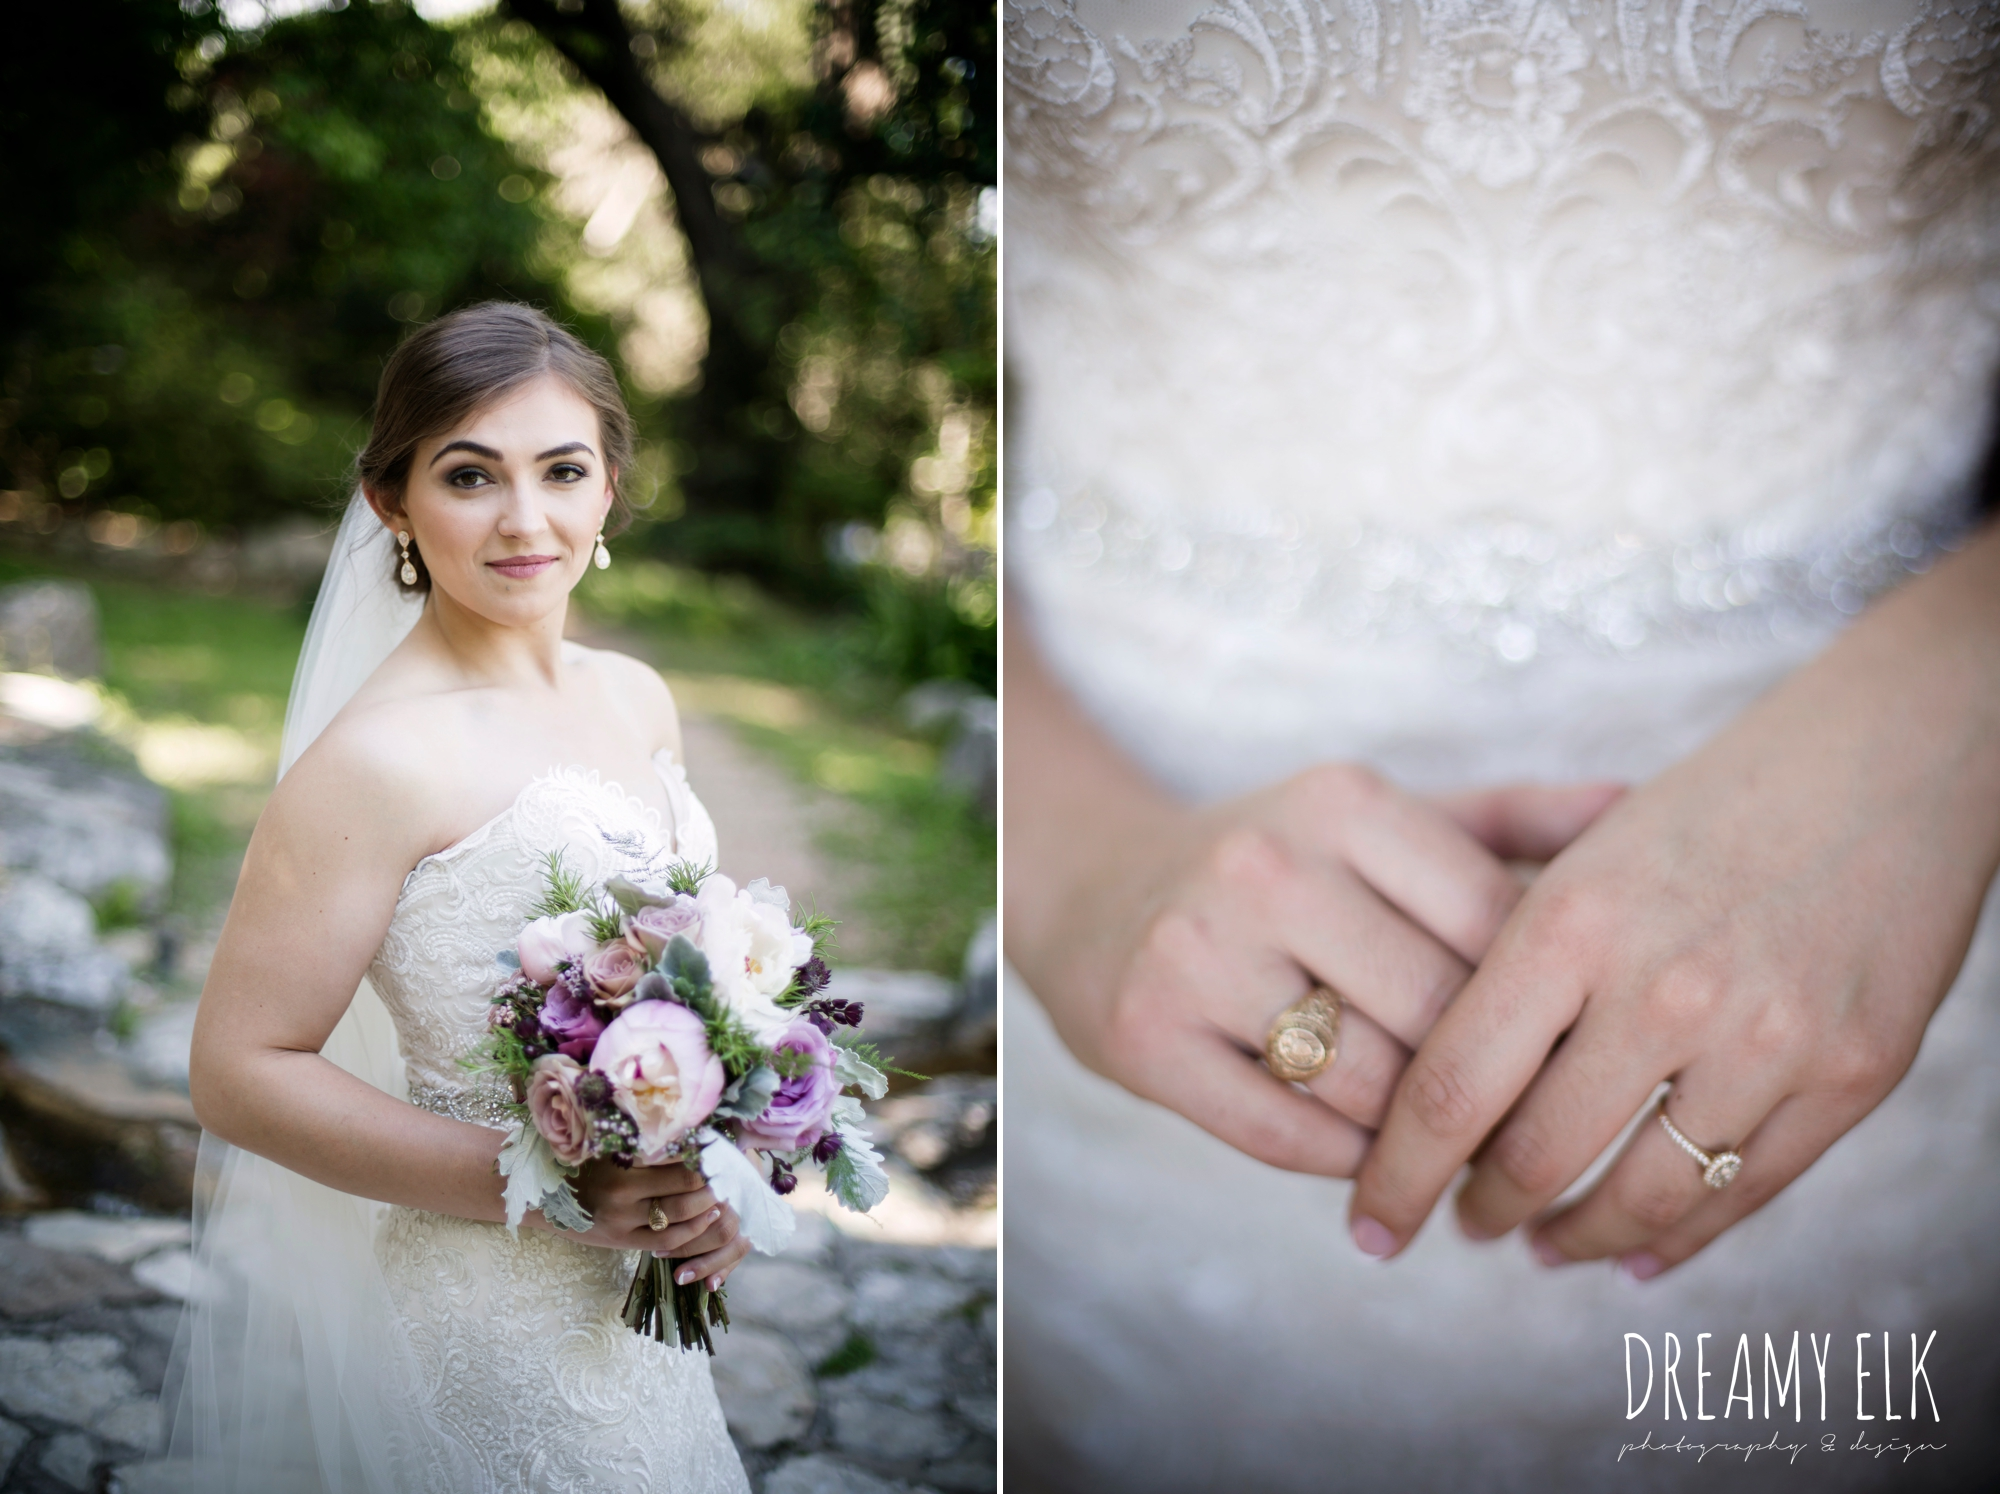 outdoor bridal photo, lace fit and flare sweetheart wedding dress, purple wedding bouquet, long veil, wedding hair up, zilker botanical gardens, austin, texas {dreamy elk photography and design}